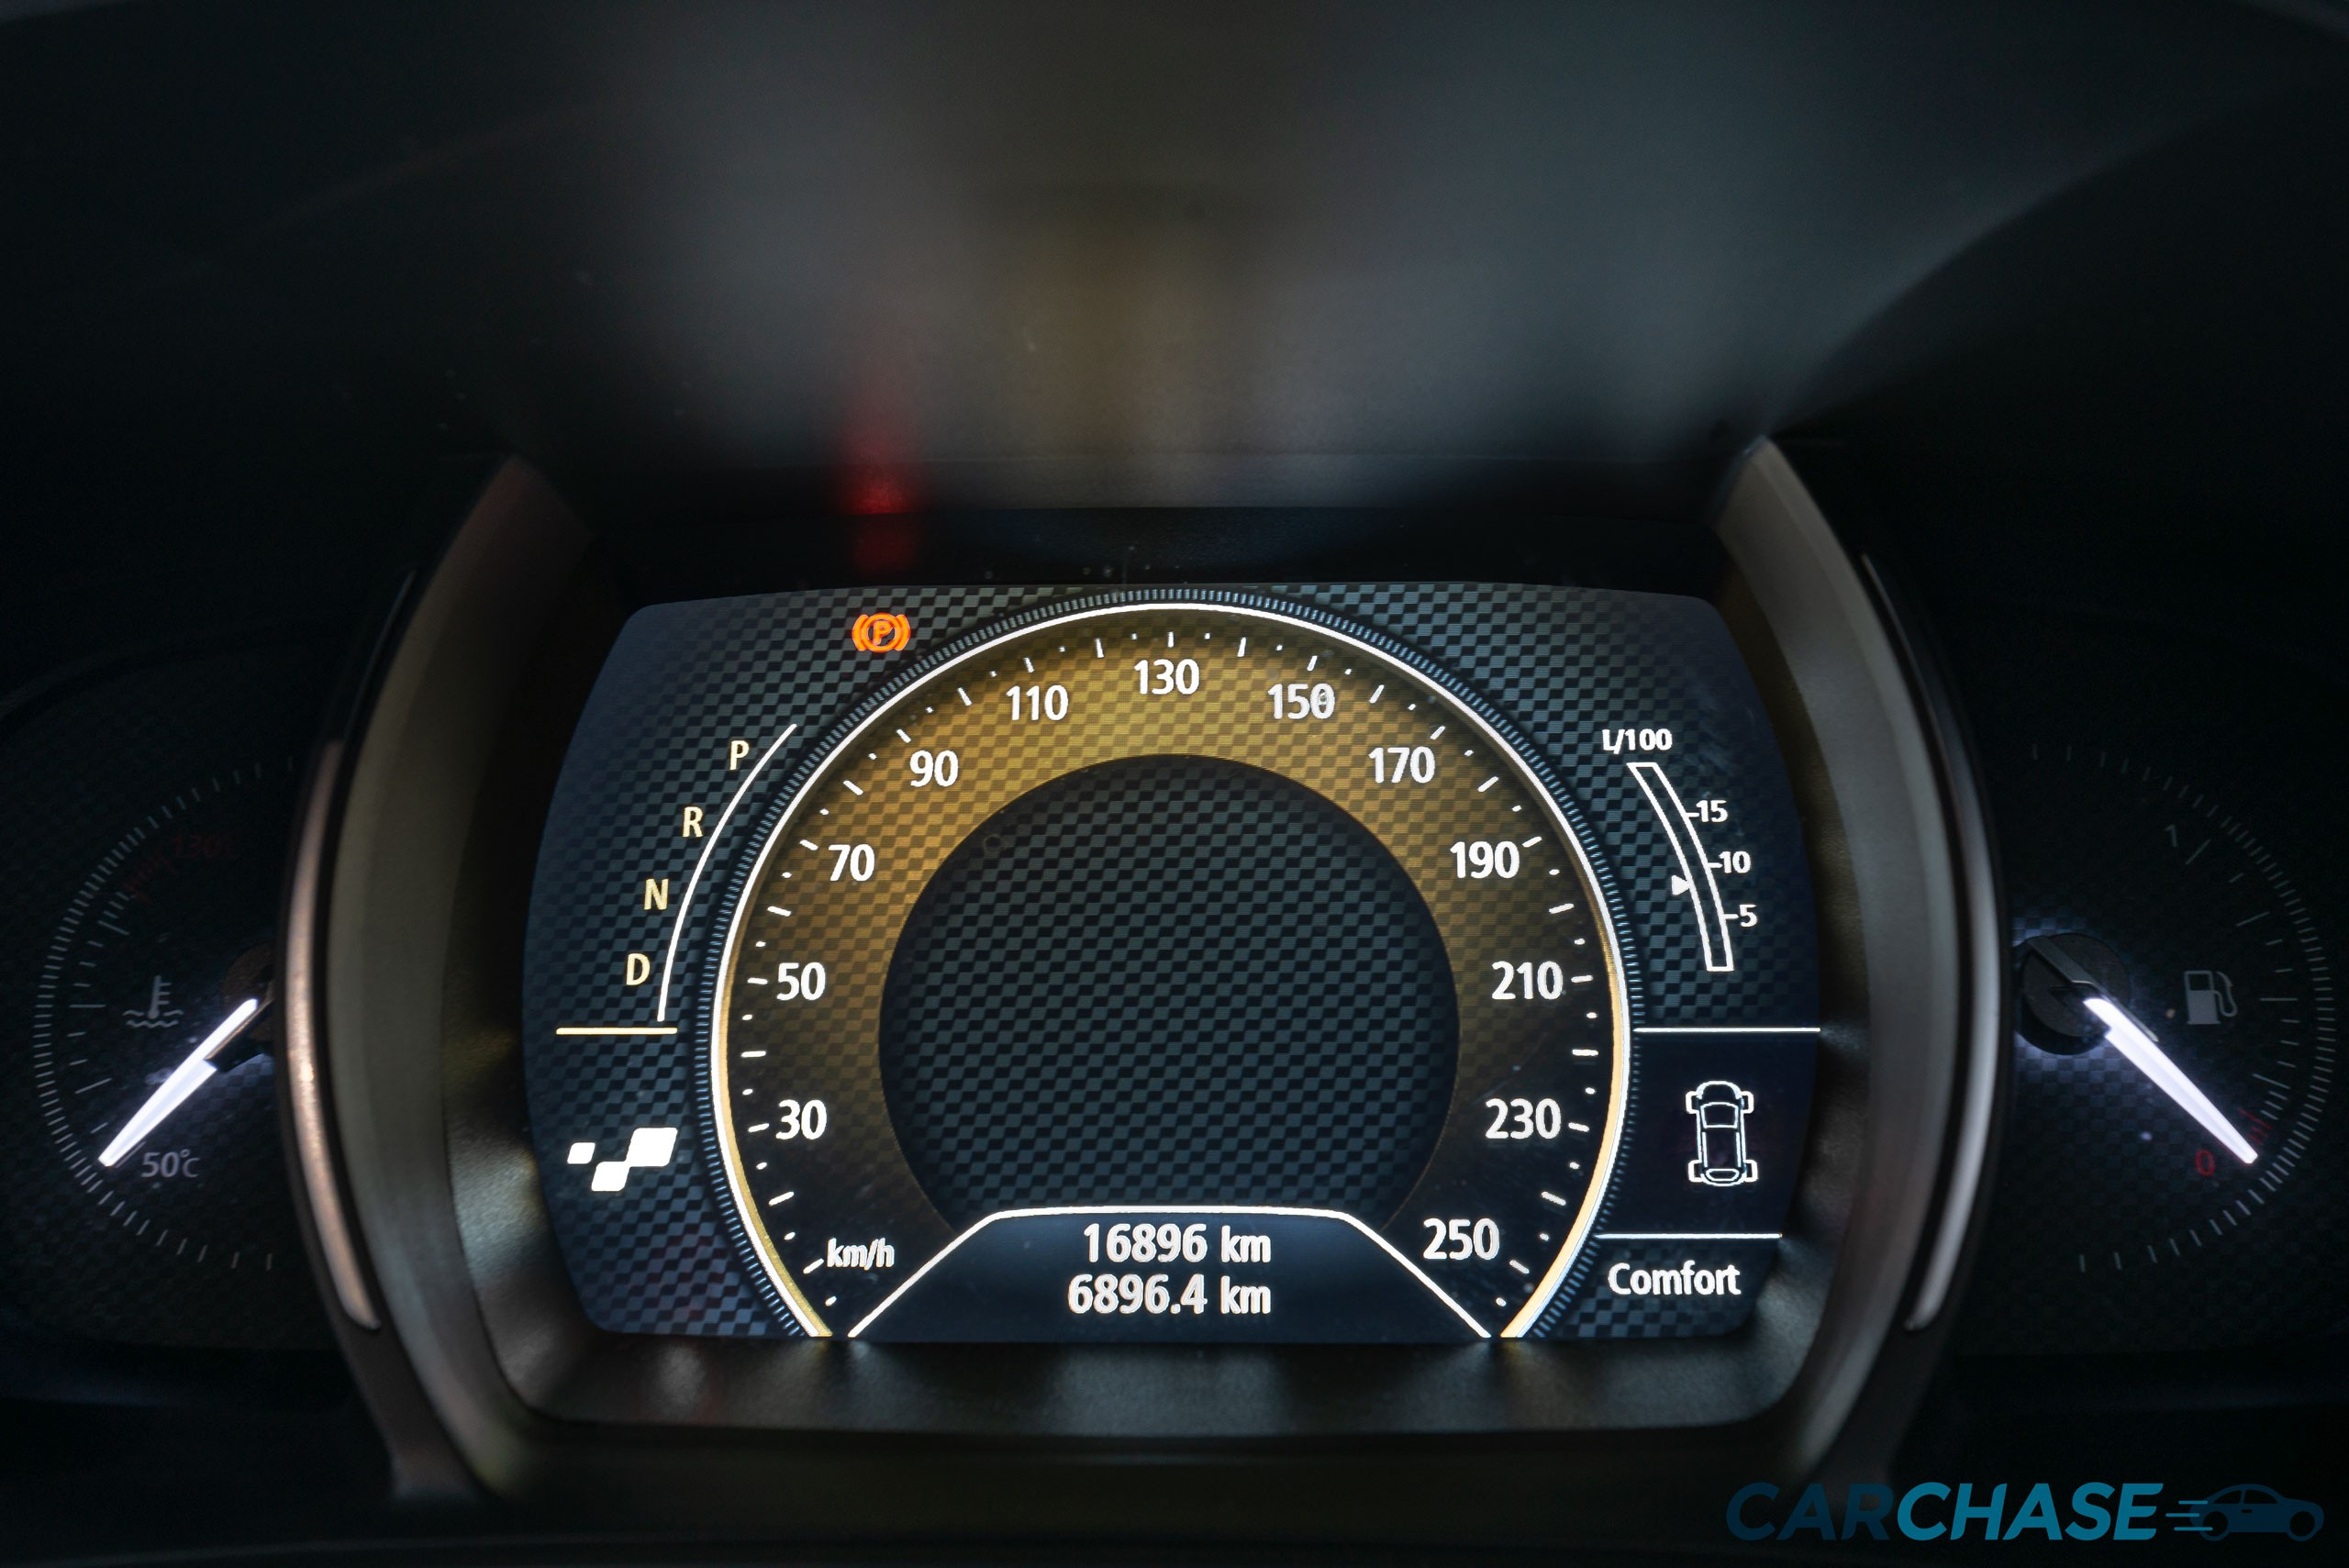 Image of dials profile of 2016 Renault Megane GT